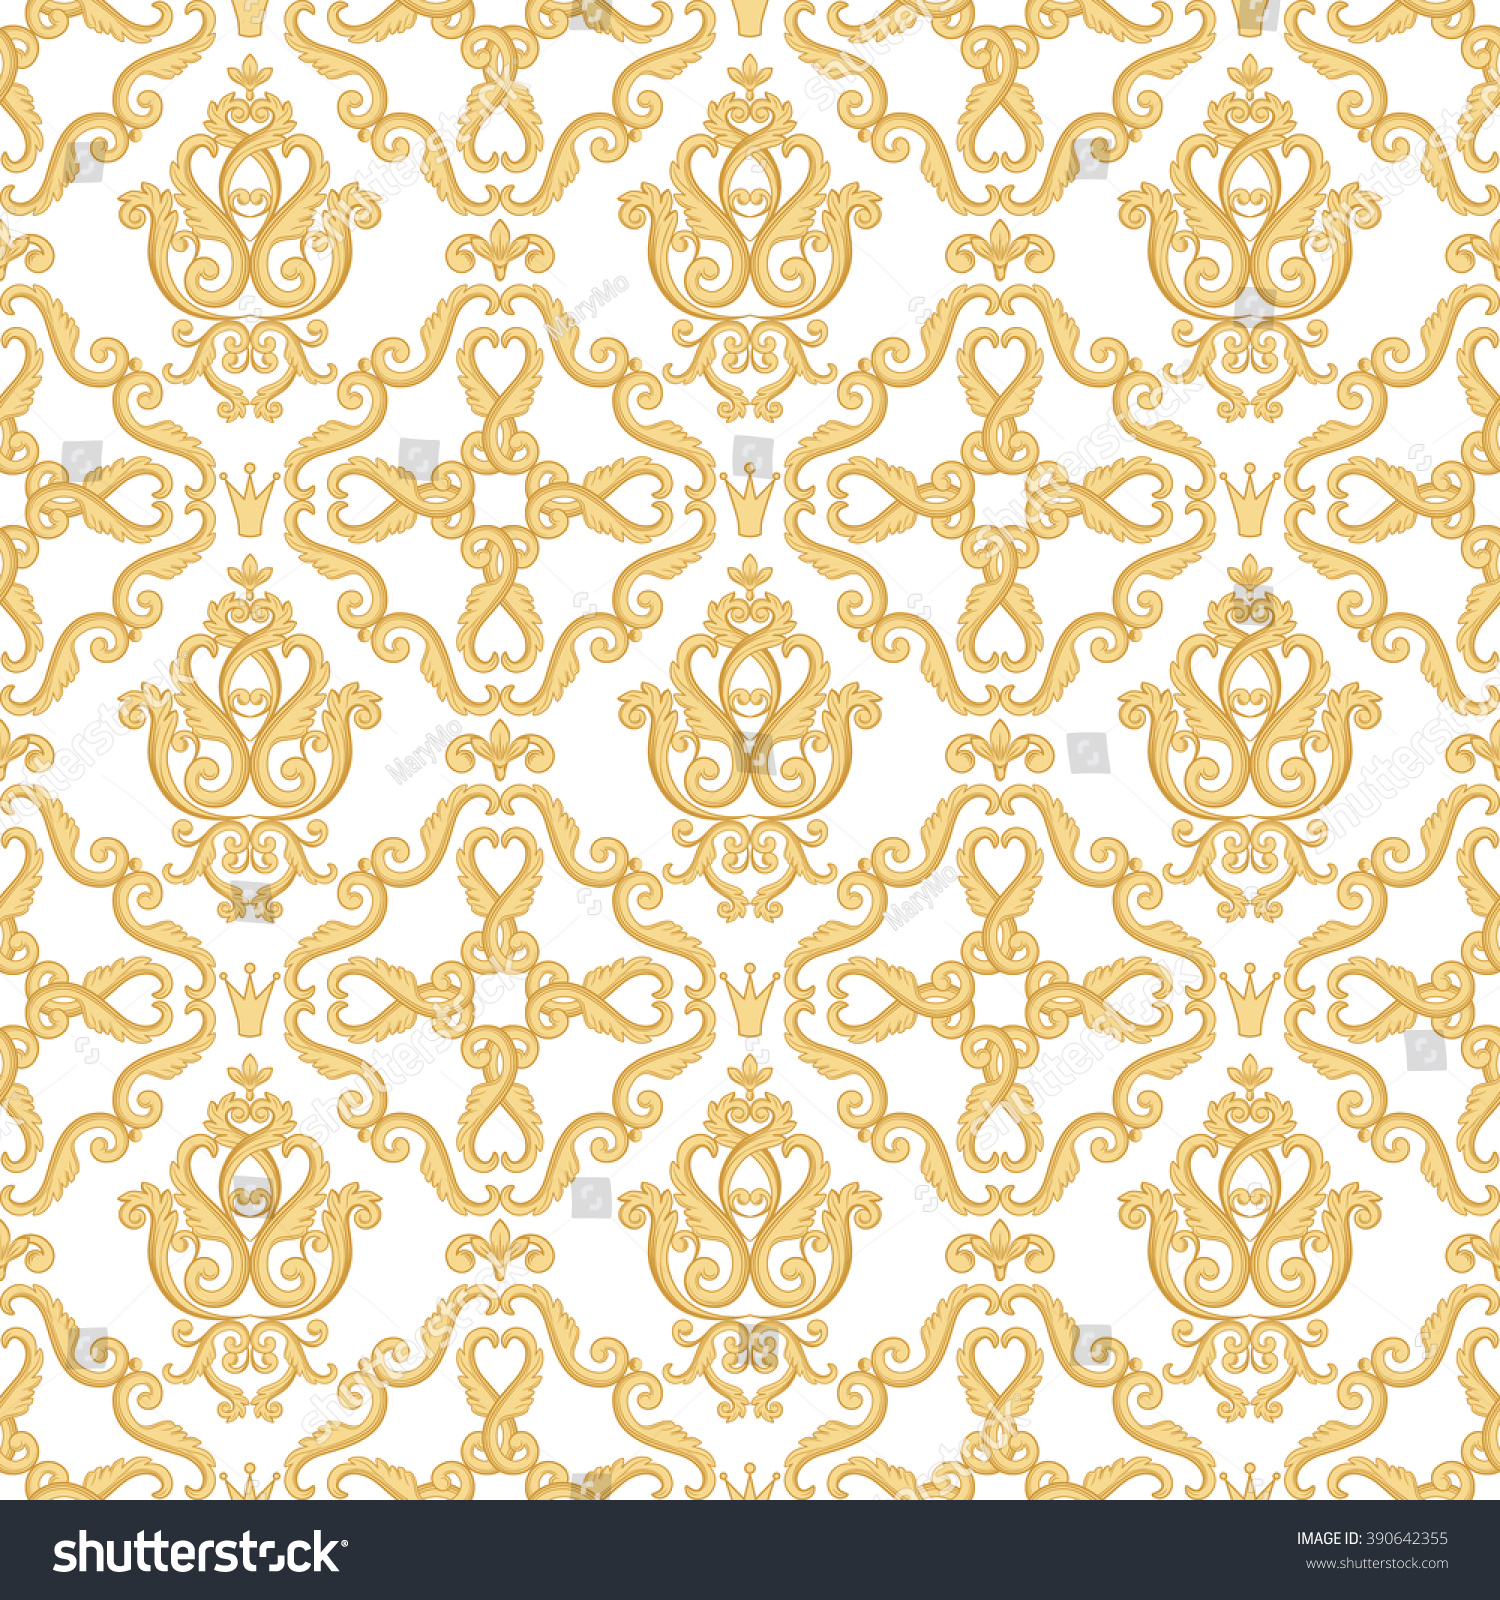 Seamless Damask Pattern Gold White Texture Stock Vector ...